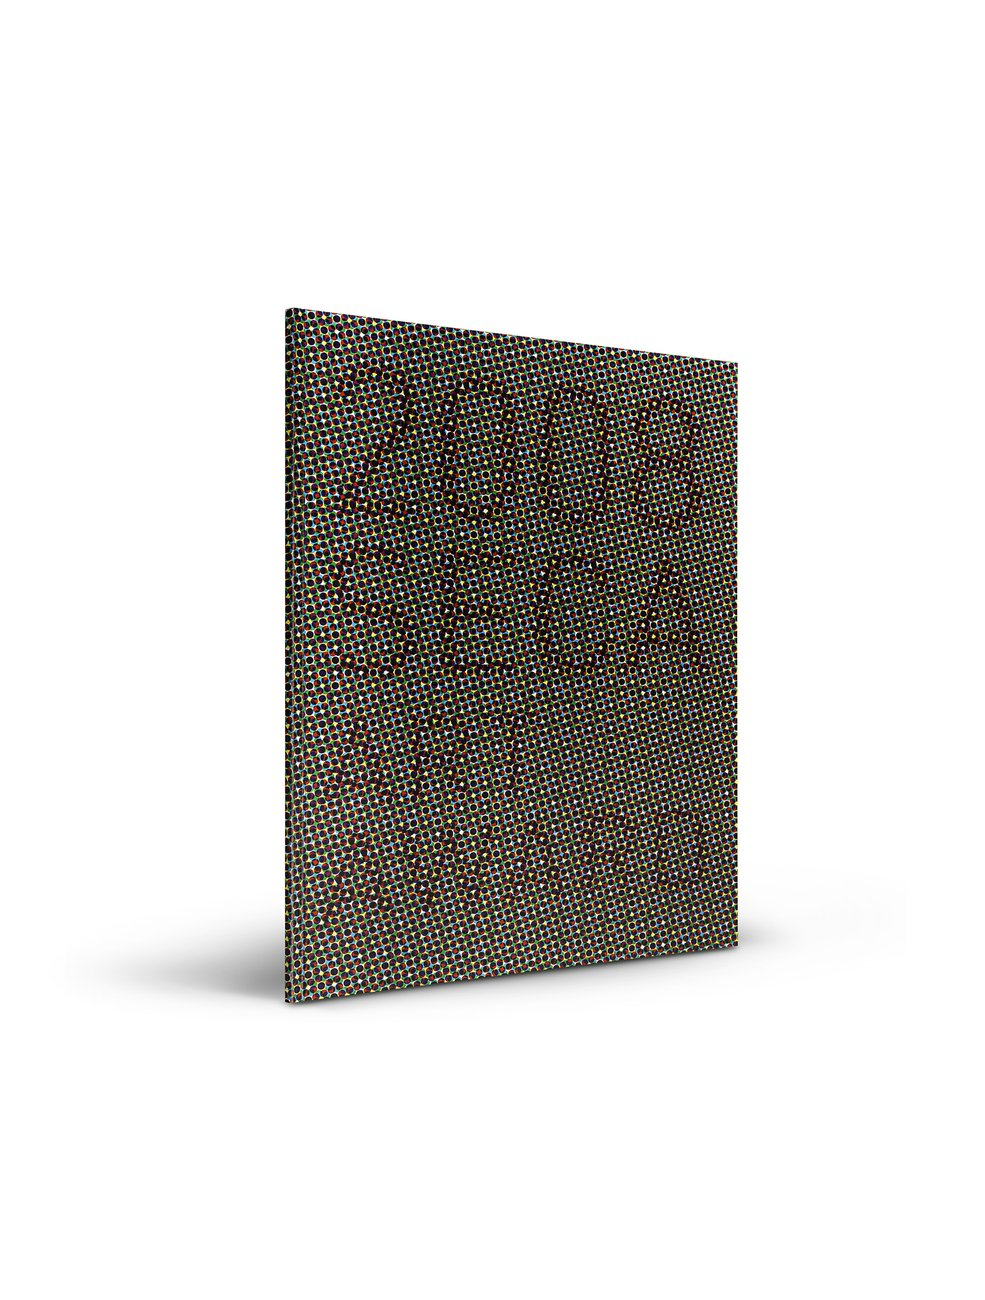 2008 SECA Art Award publication cover